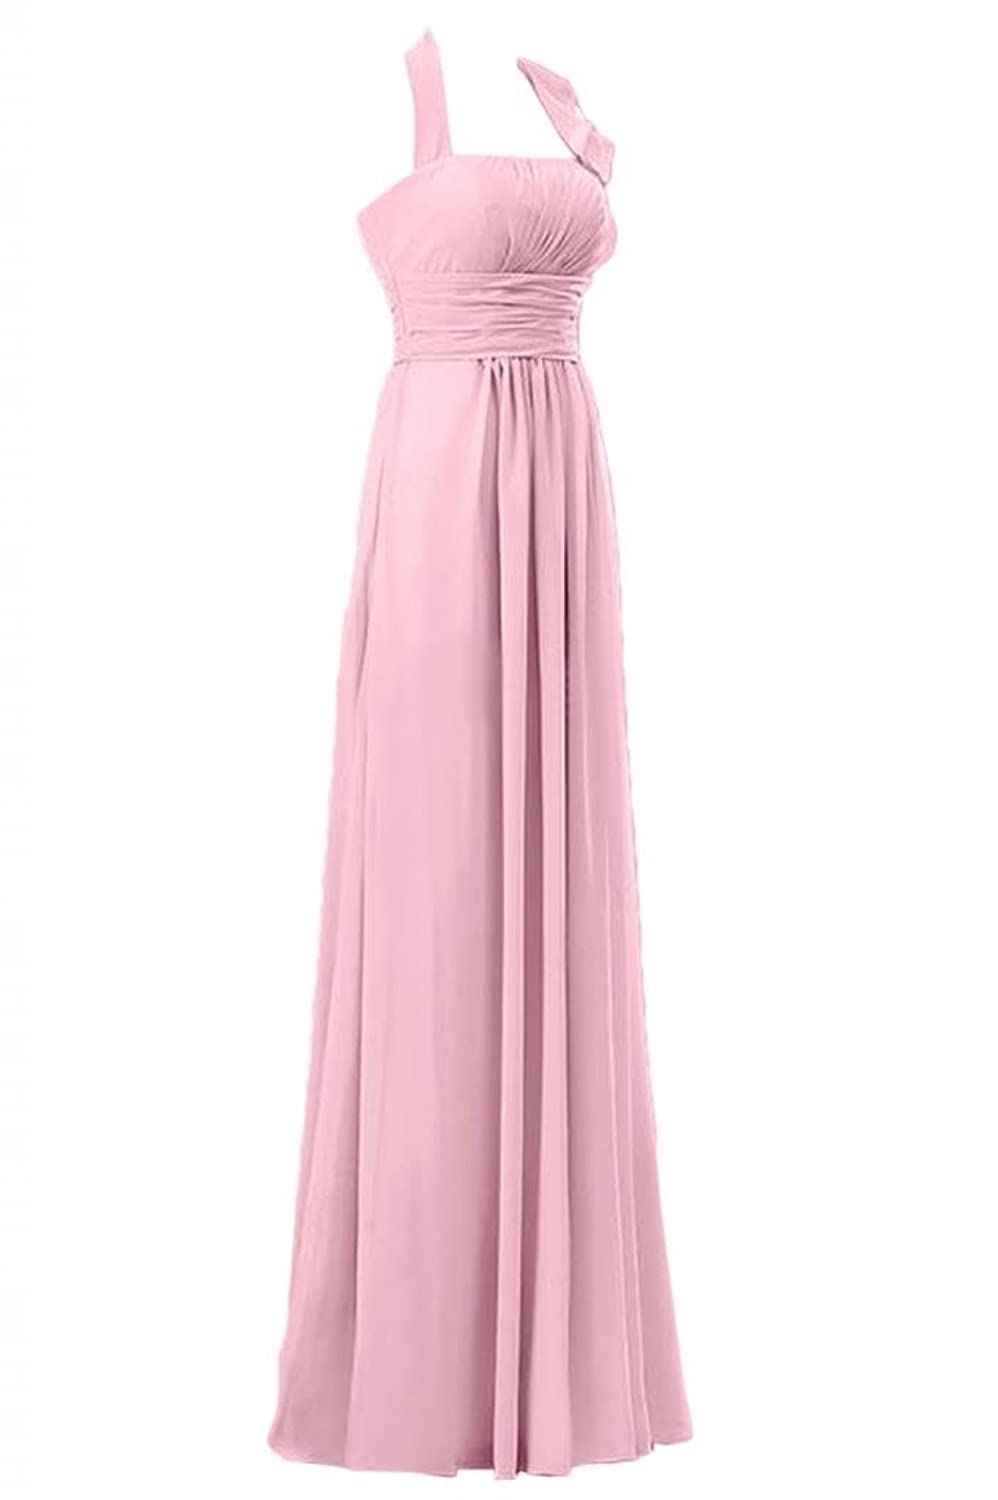 Sunvary Gorgeous Long Empire Evening Dress Prom Dress Pageant Dress Maxi